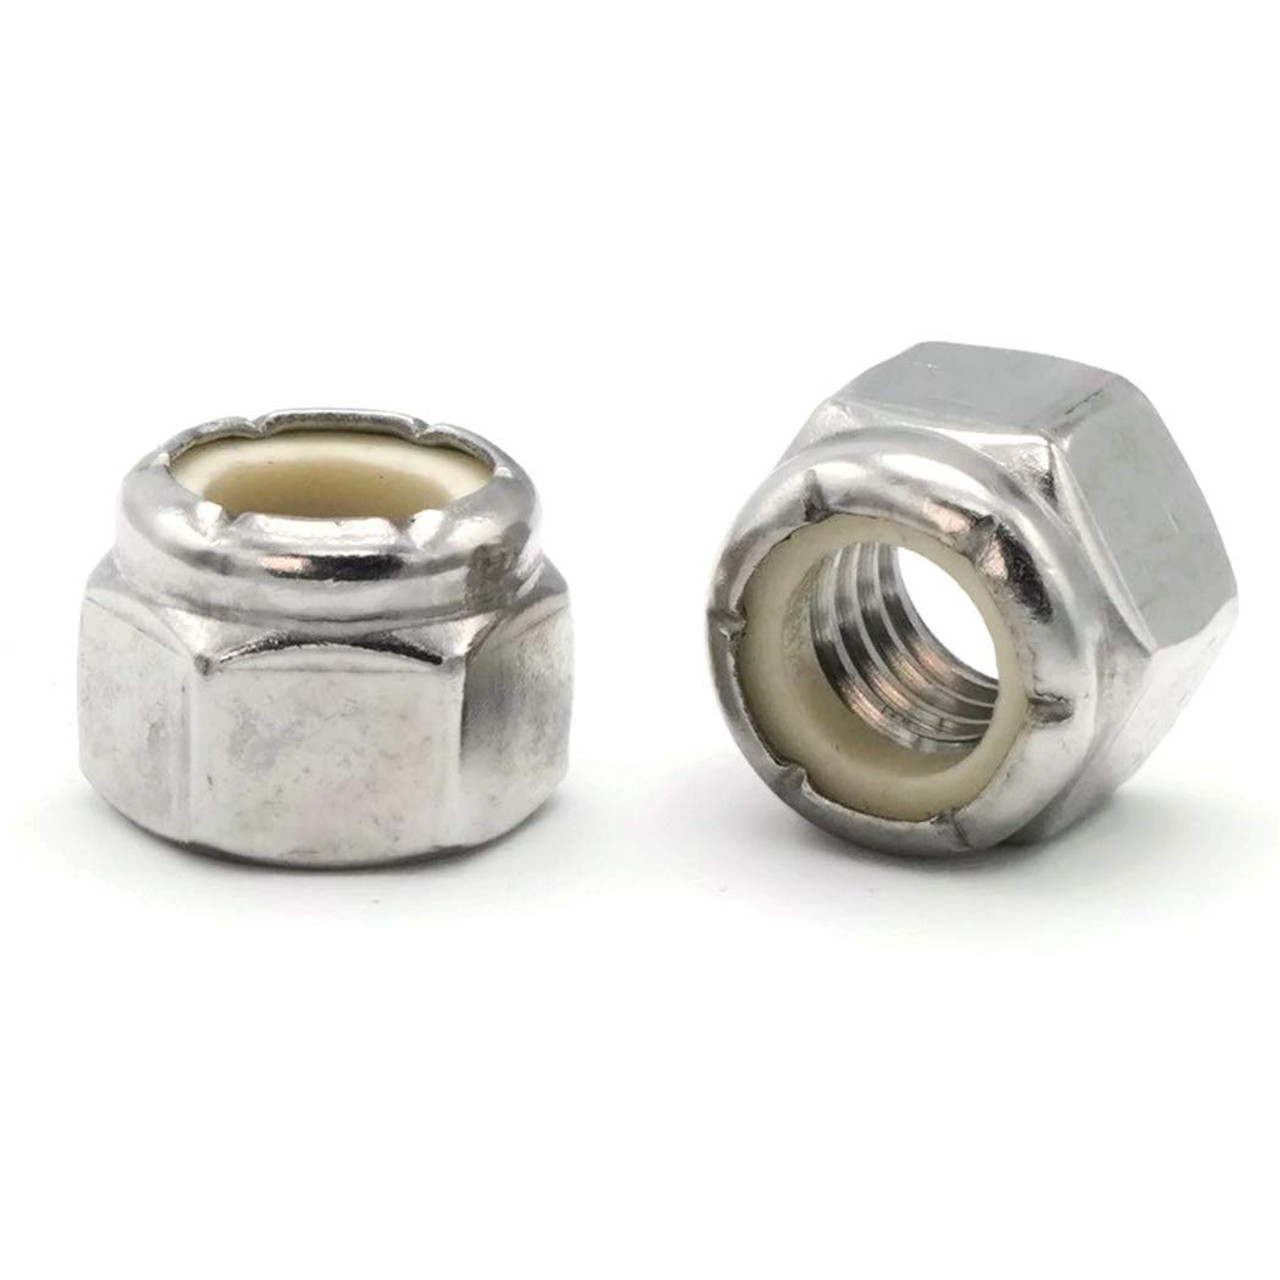 10-32 Nylock Nut 316 Stainless